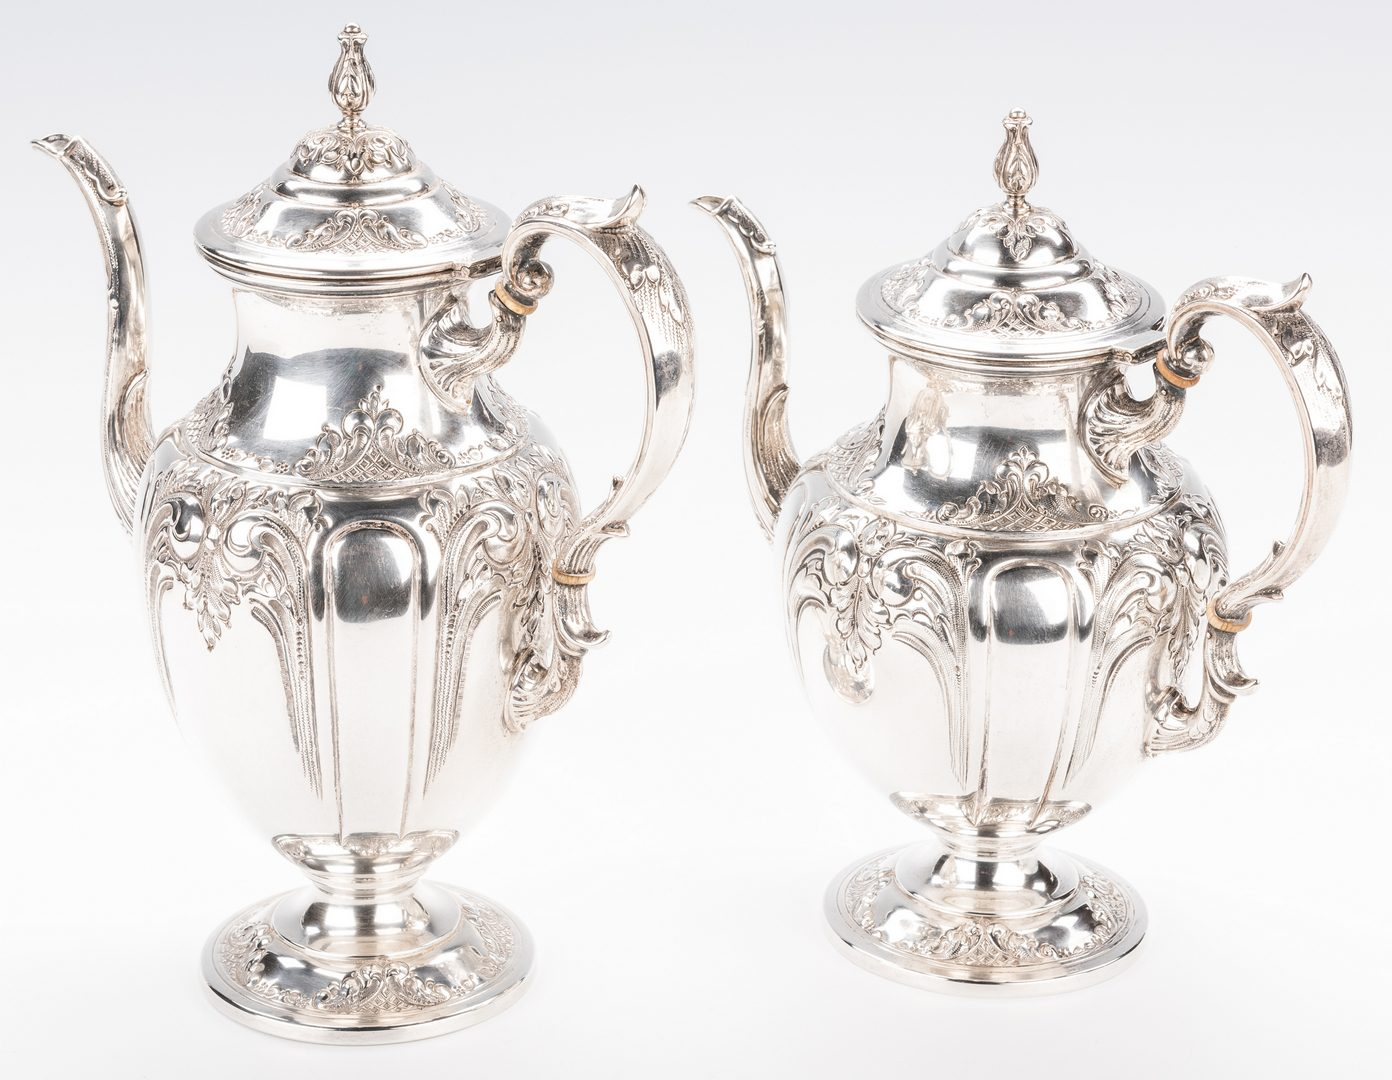 Lot 77: Fisher Victoria 5-piece Sterling Tea Set with tray